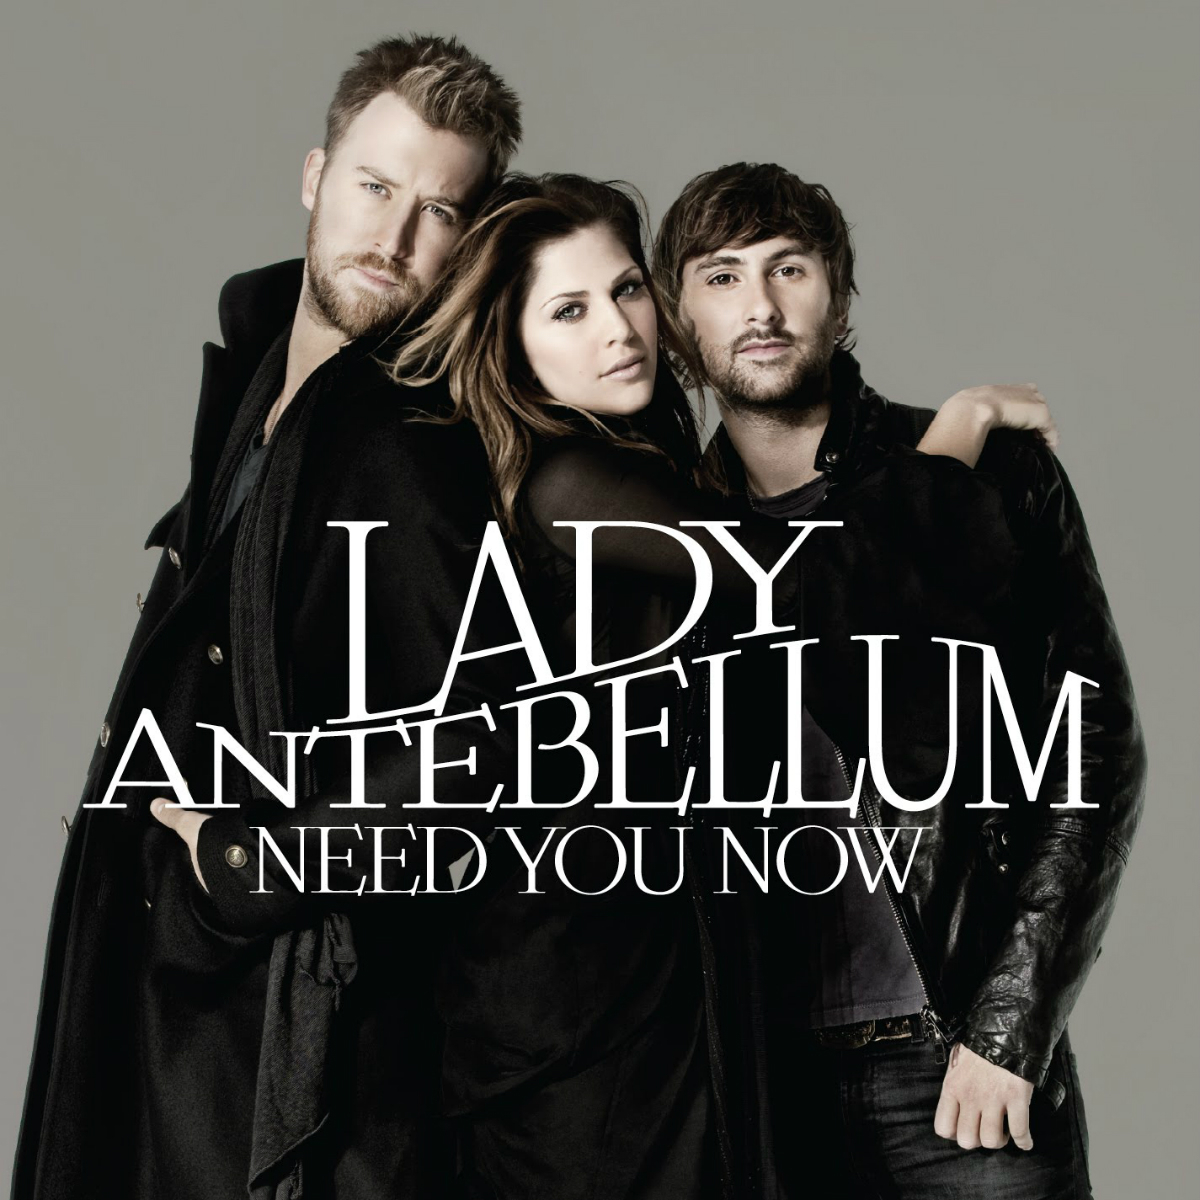 Lady Antebellum Need You Now CD